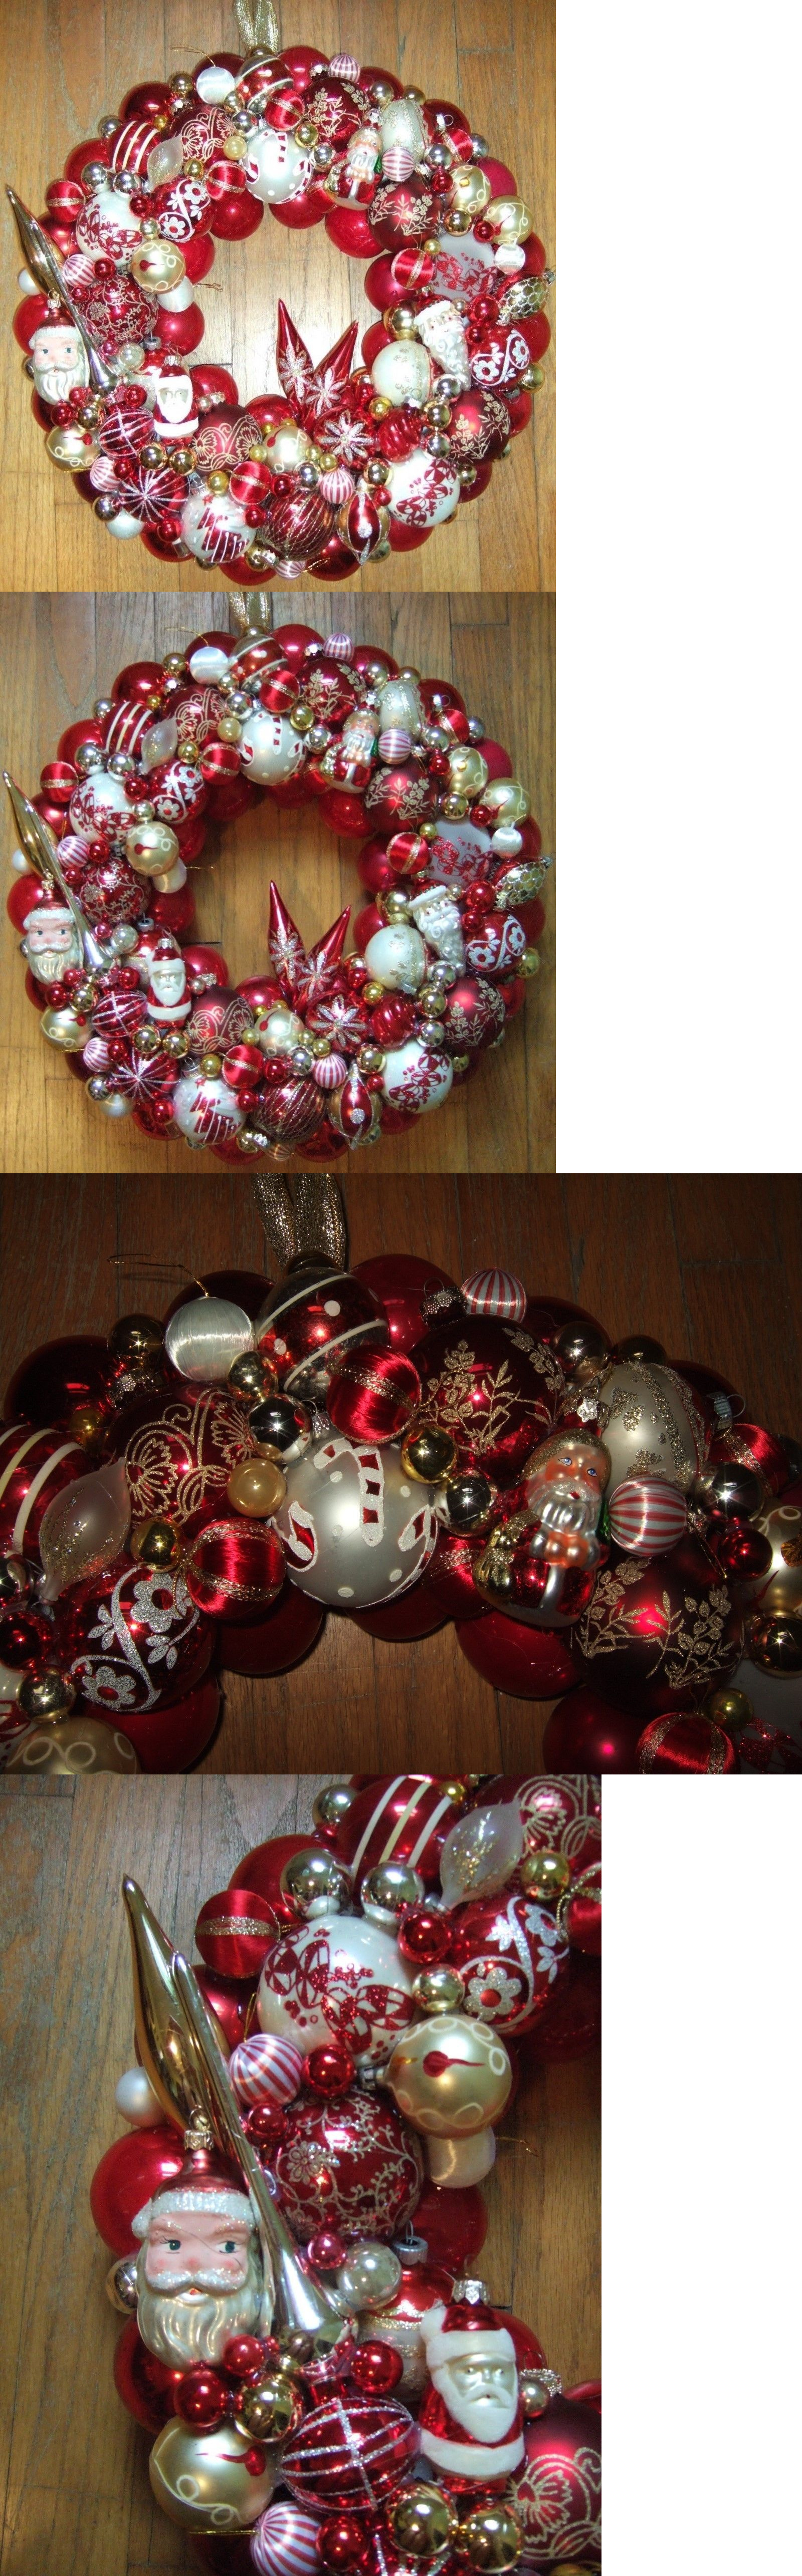 christmas decorations vintage handmade christmas ornament wreath red white 185 glass holiday decor